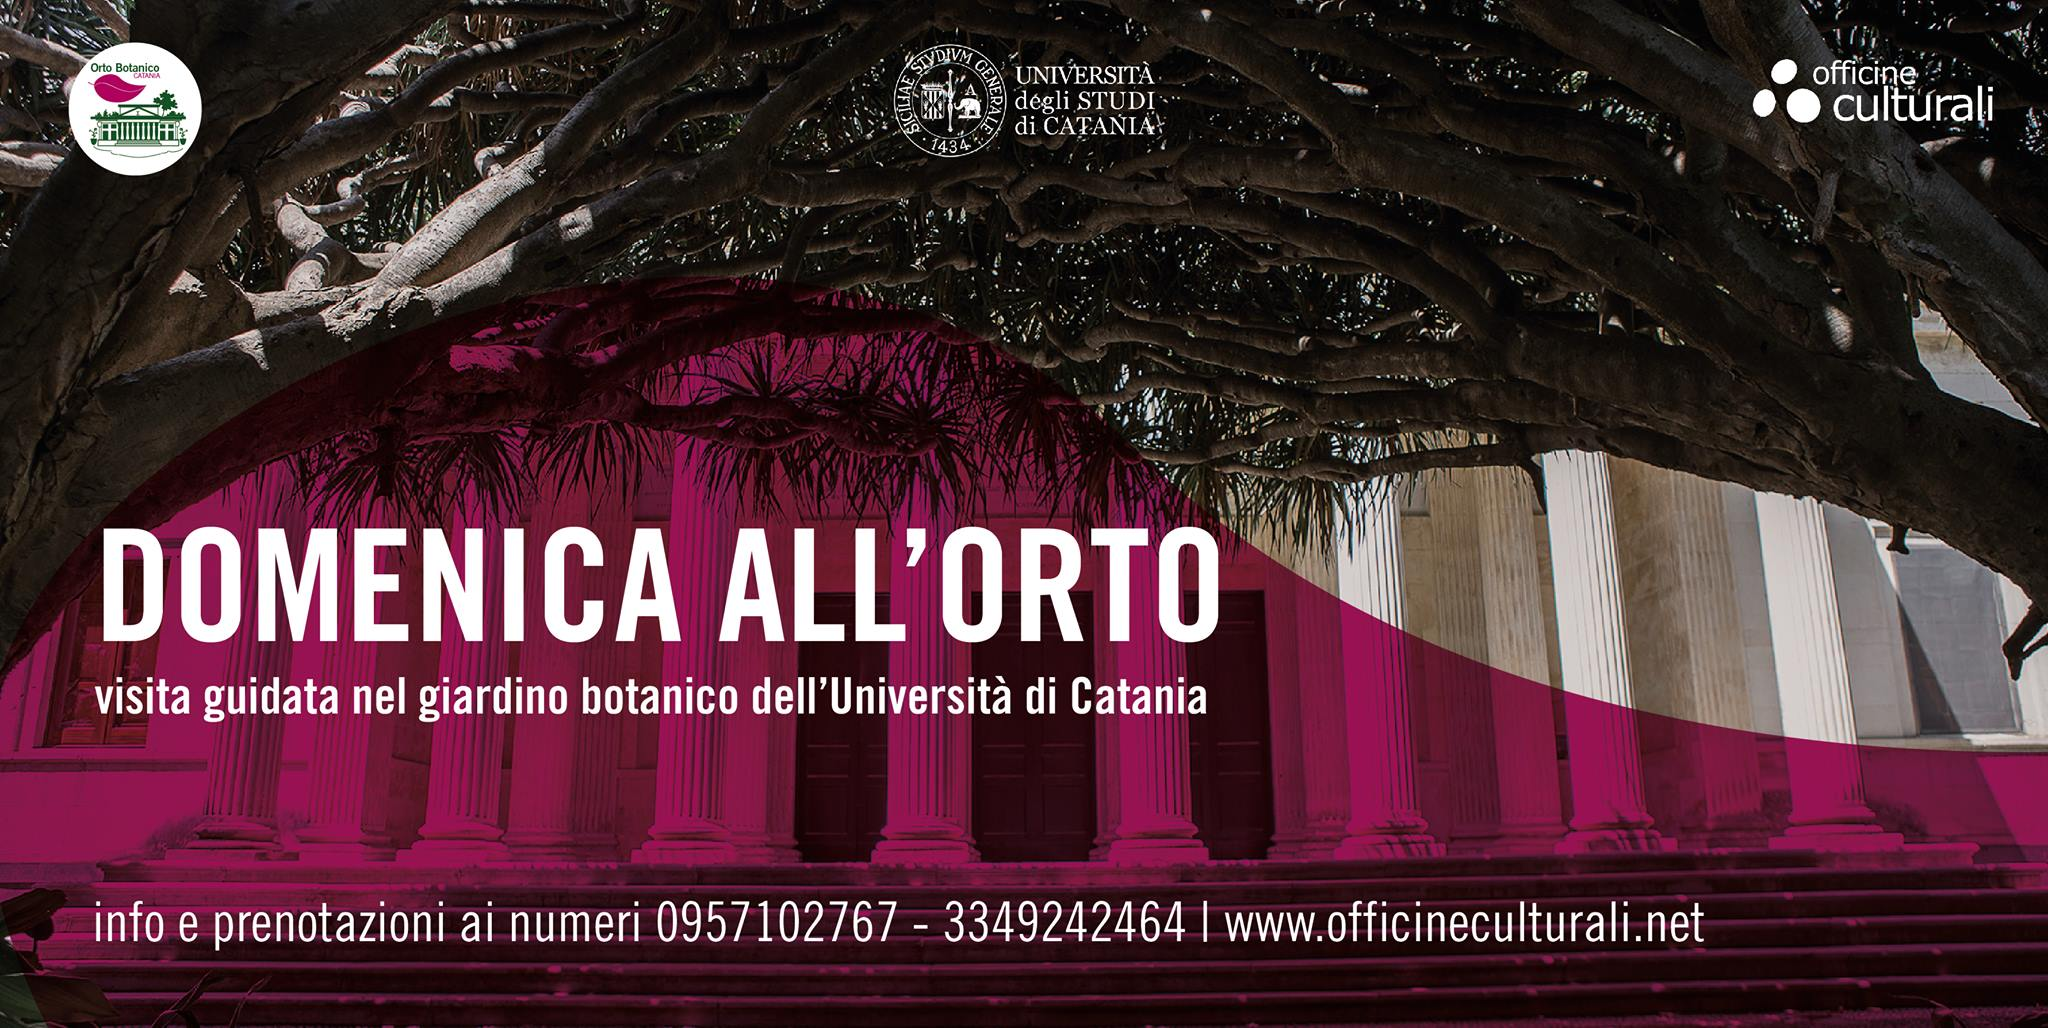 Domenica all'Orto: visite guidate